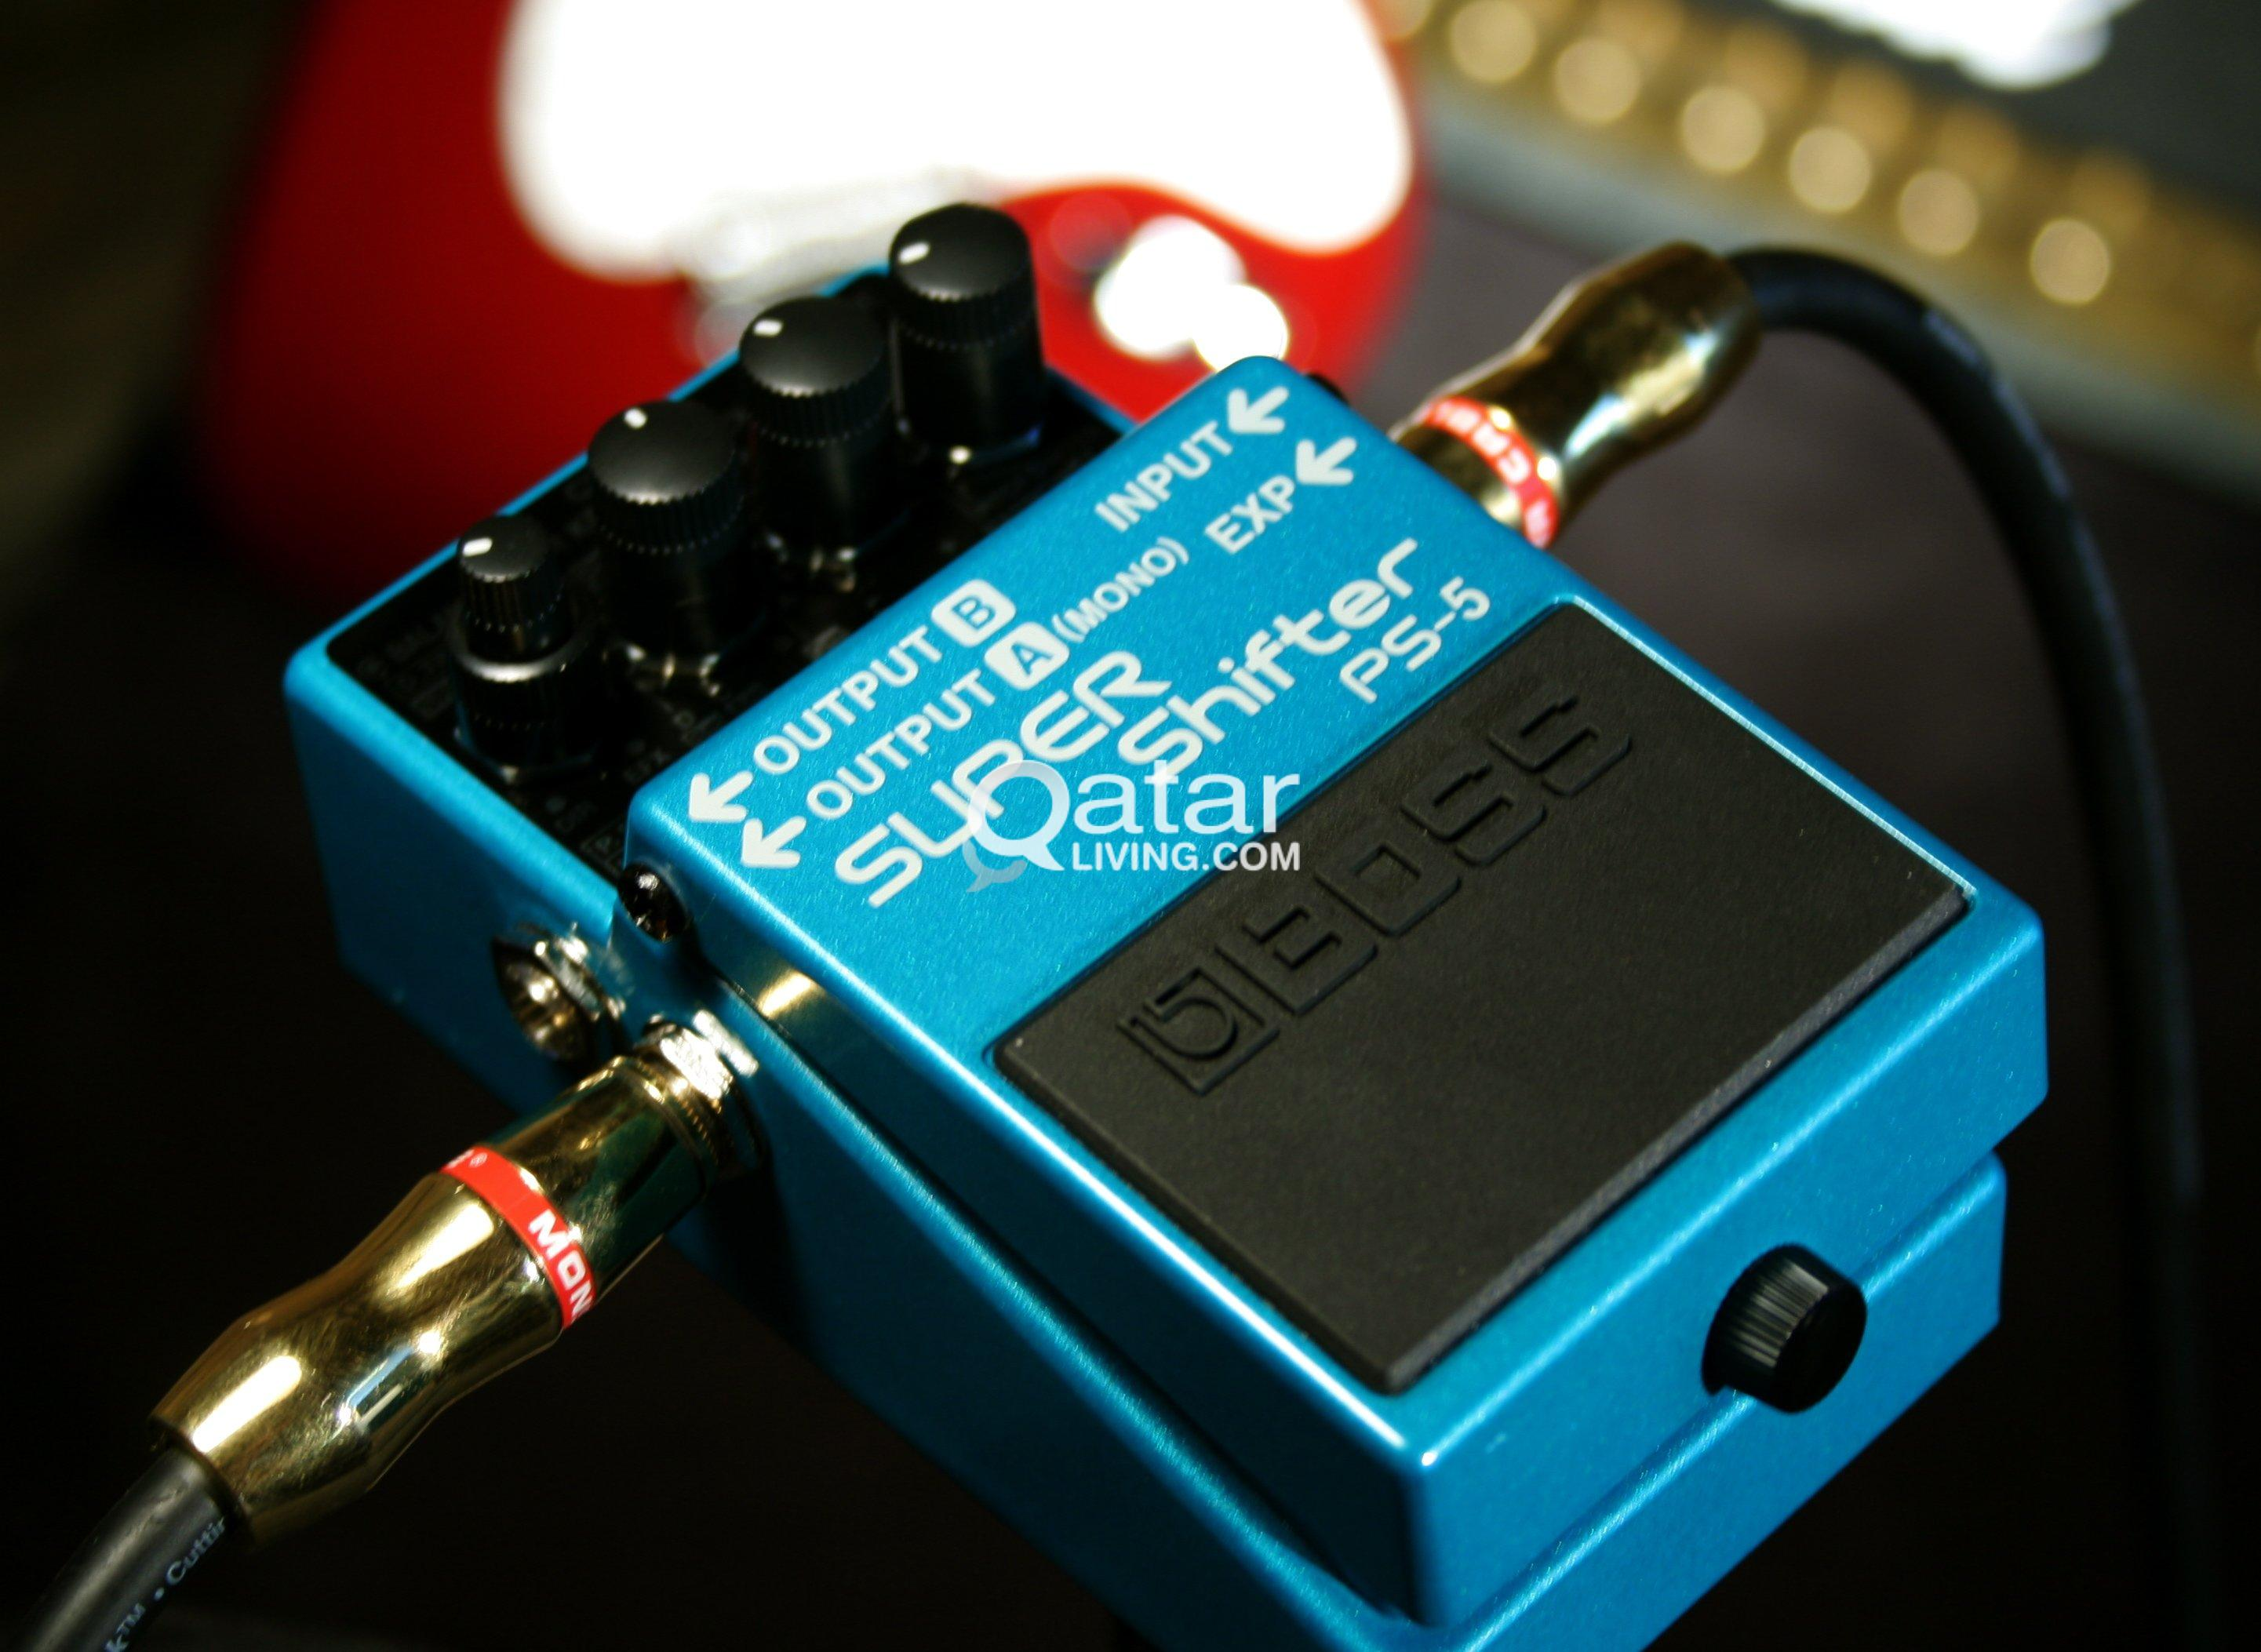 BOSS PS5 GUITAR PEDAL FOR SALE | Qatar Living